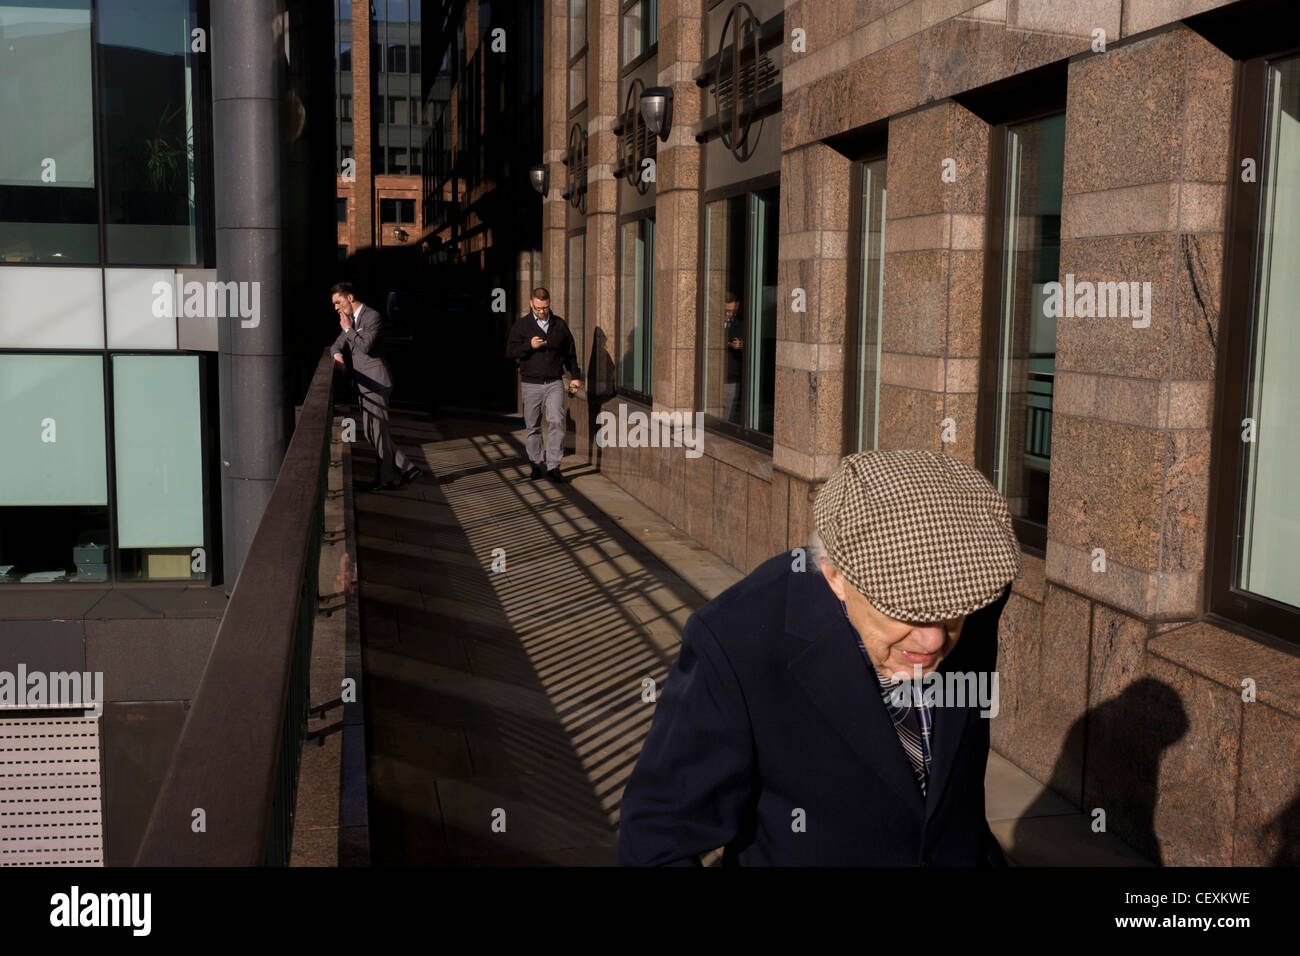 Elderly man walks along modern walkway, past a youthful office worker enjoying a thoughful moment in City of London. - Stock Image